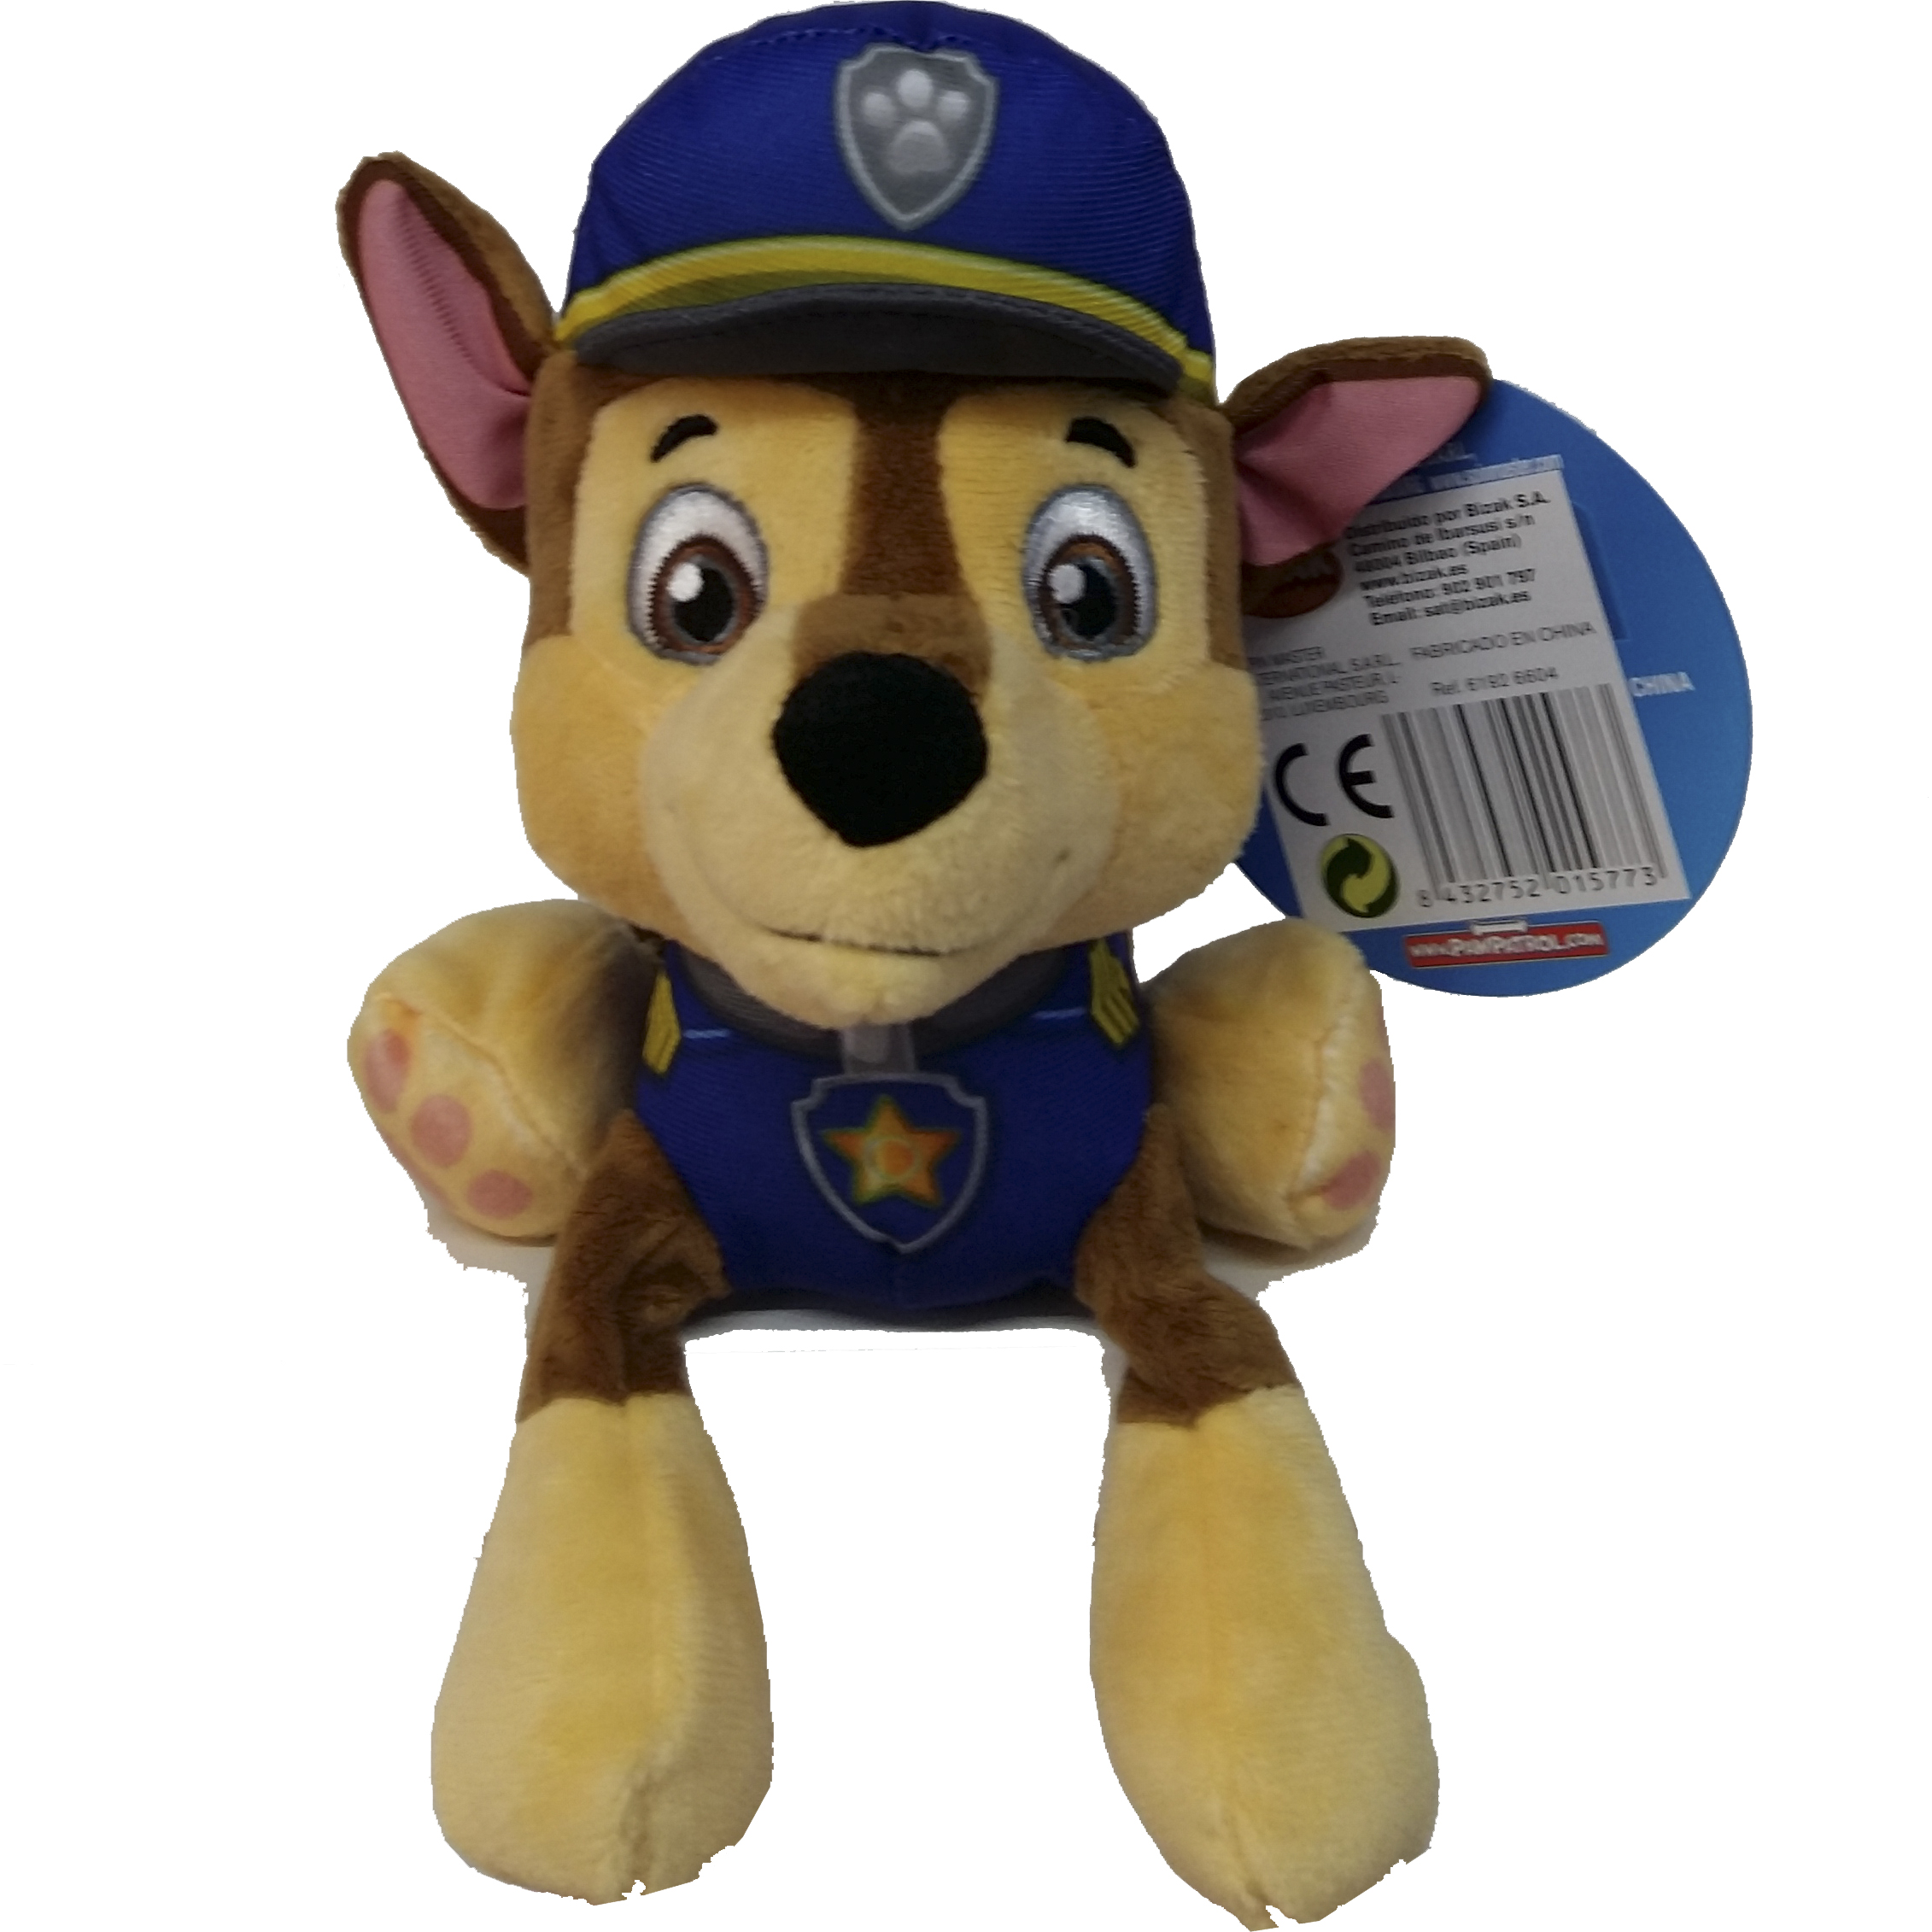 imagen chase patrulla canina peluche